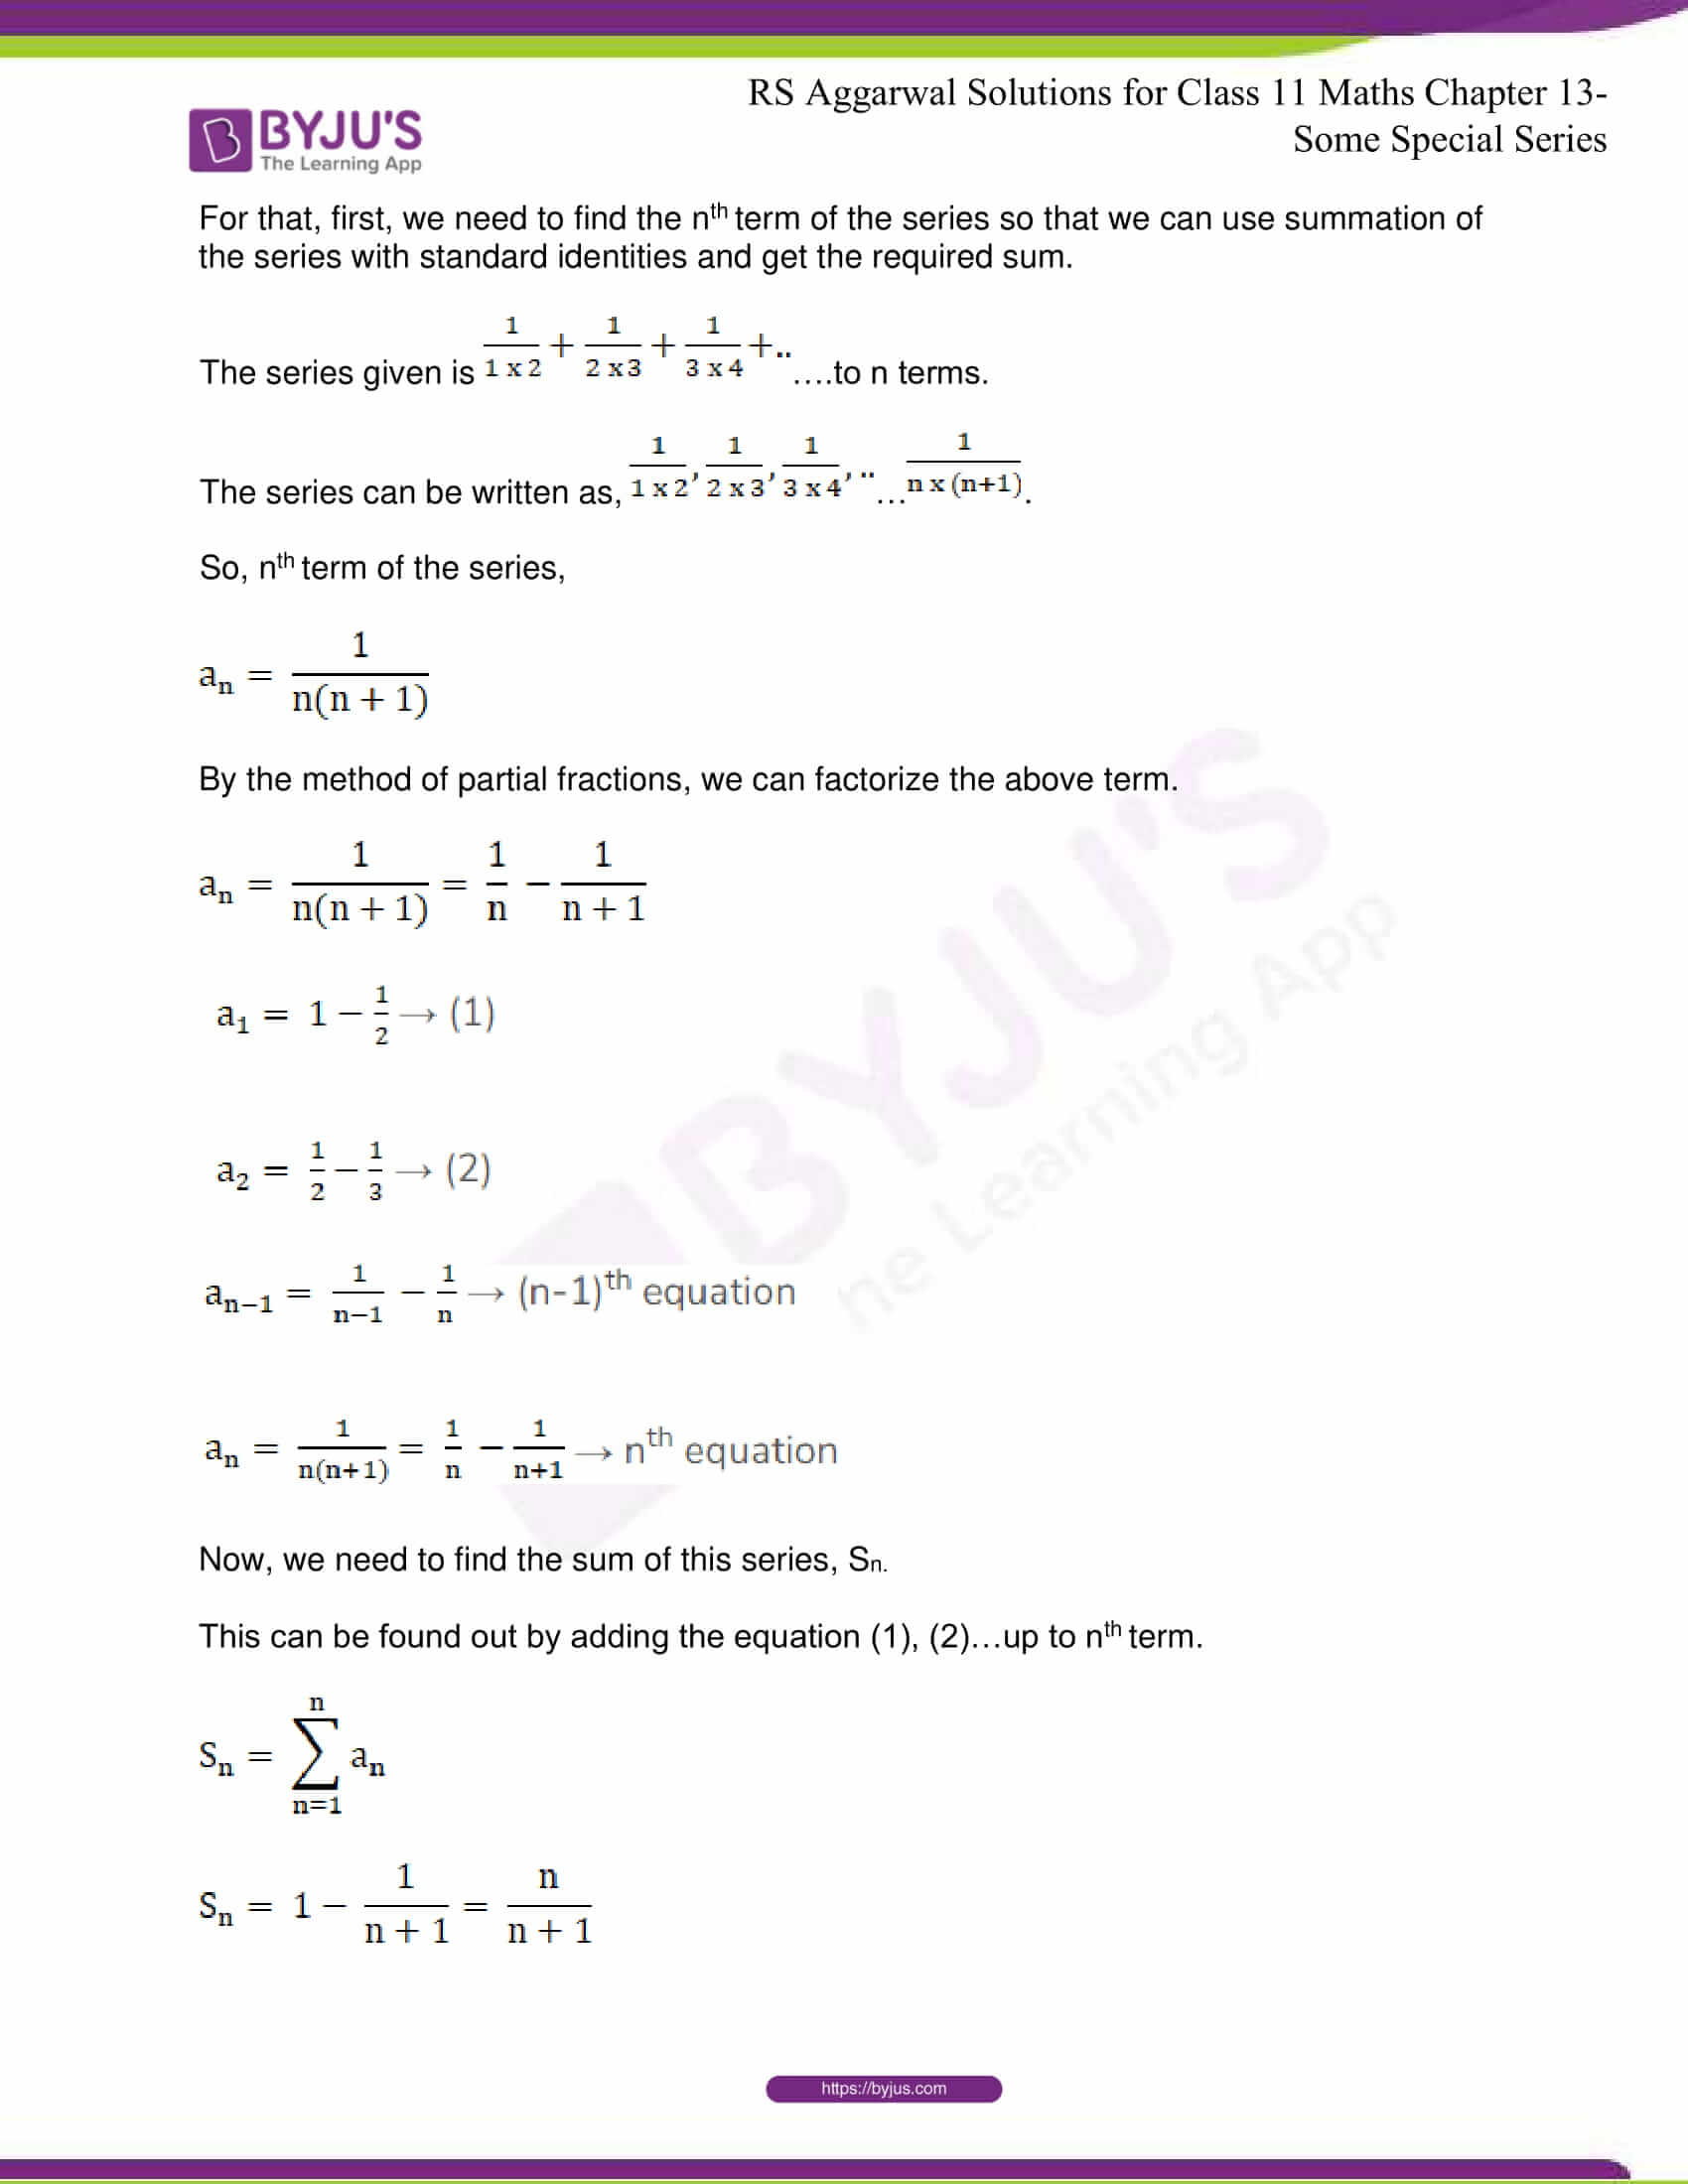 rsaggarwal solutions class 11 maths chapter 13 31